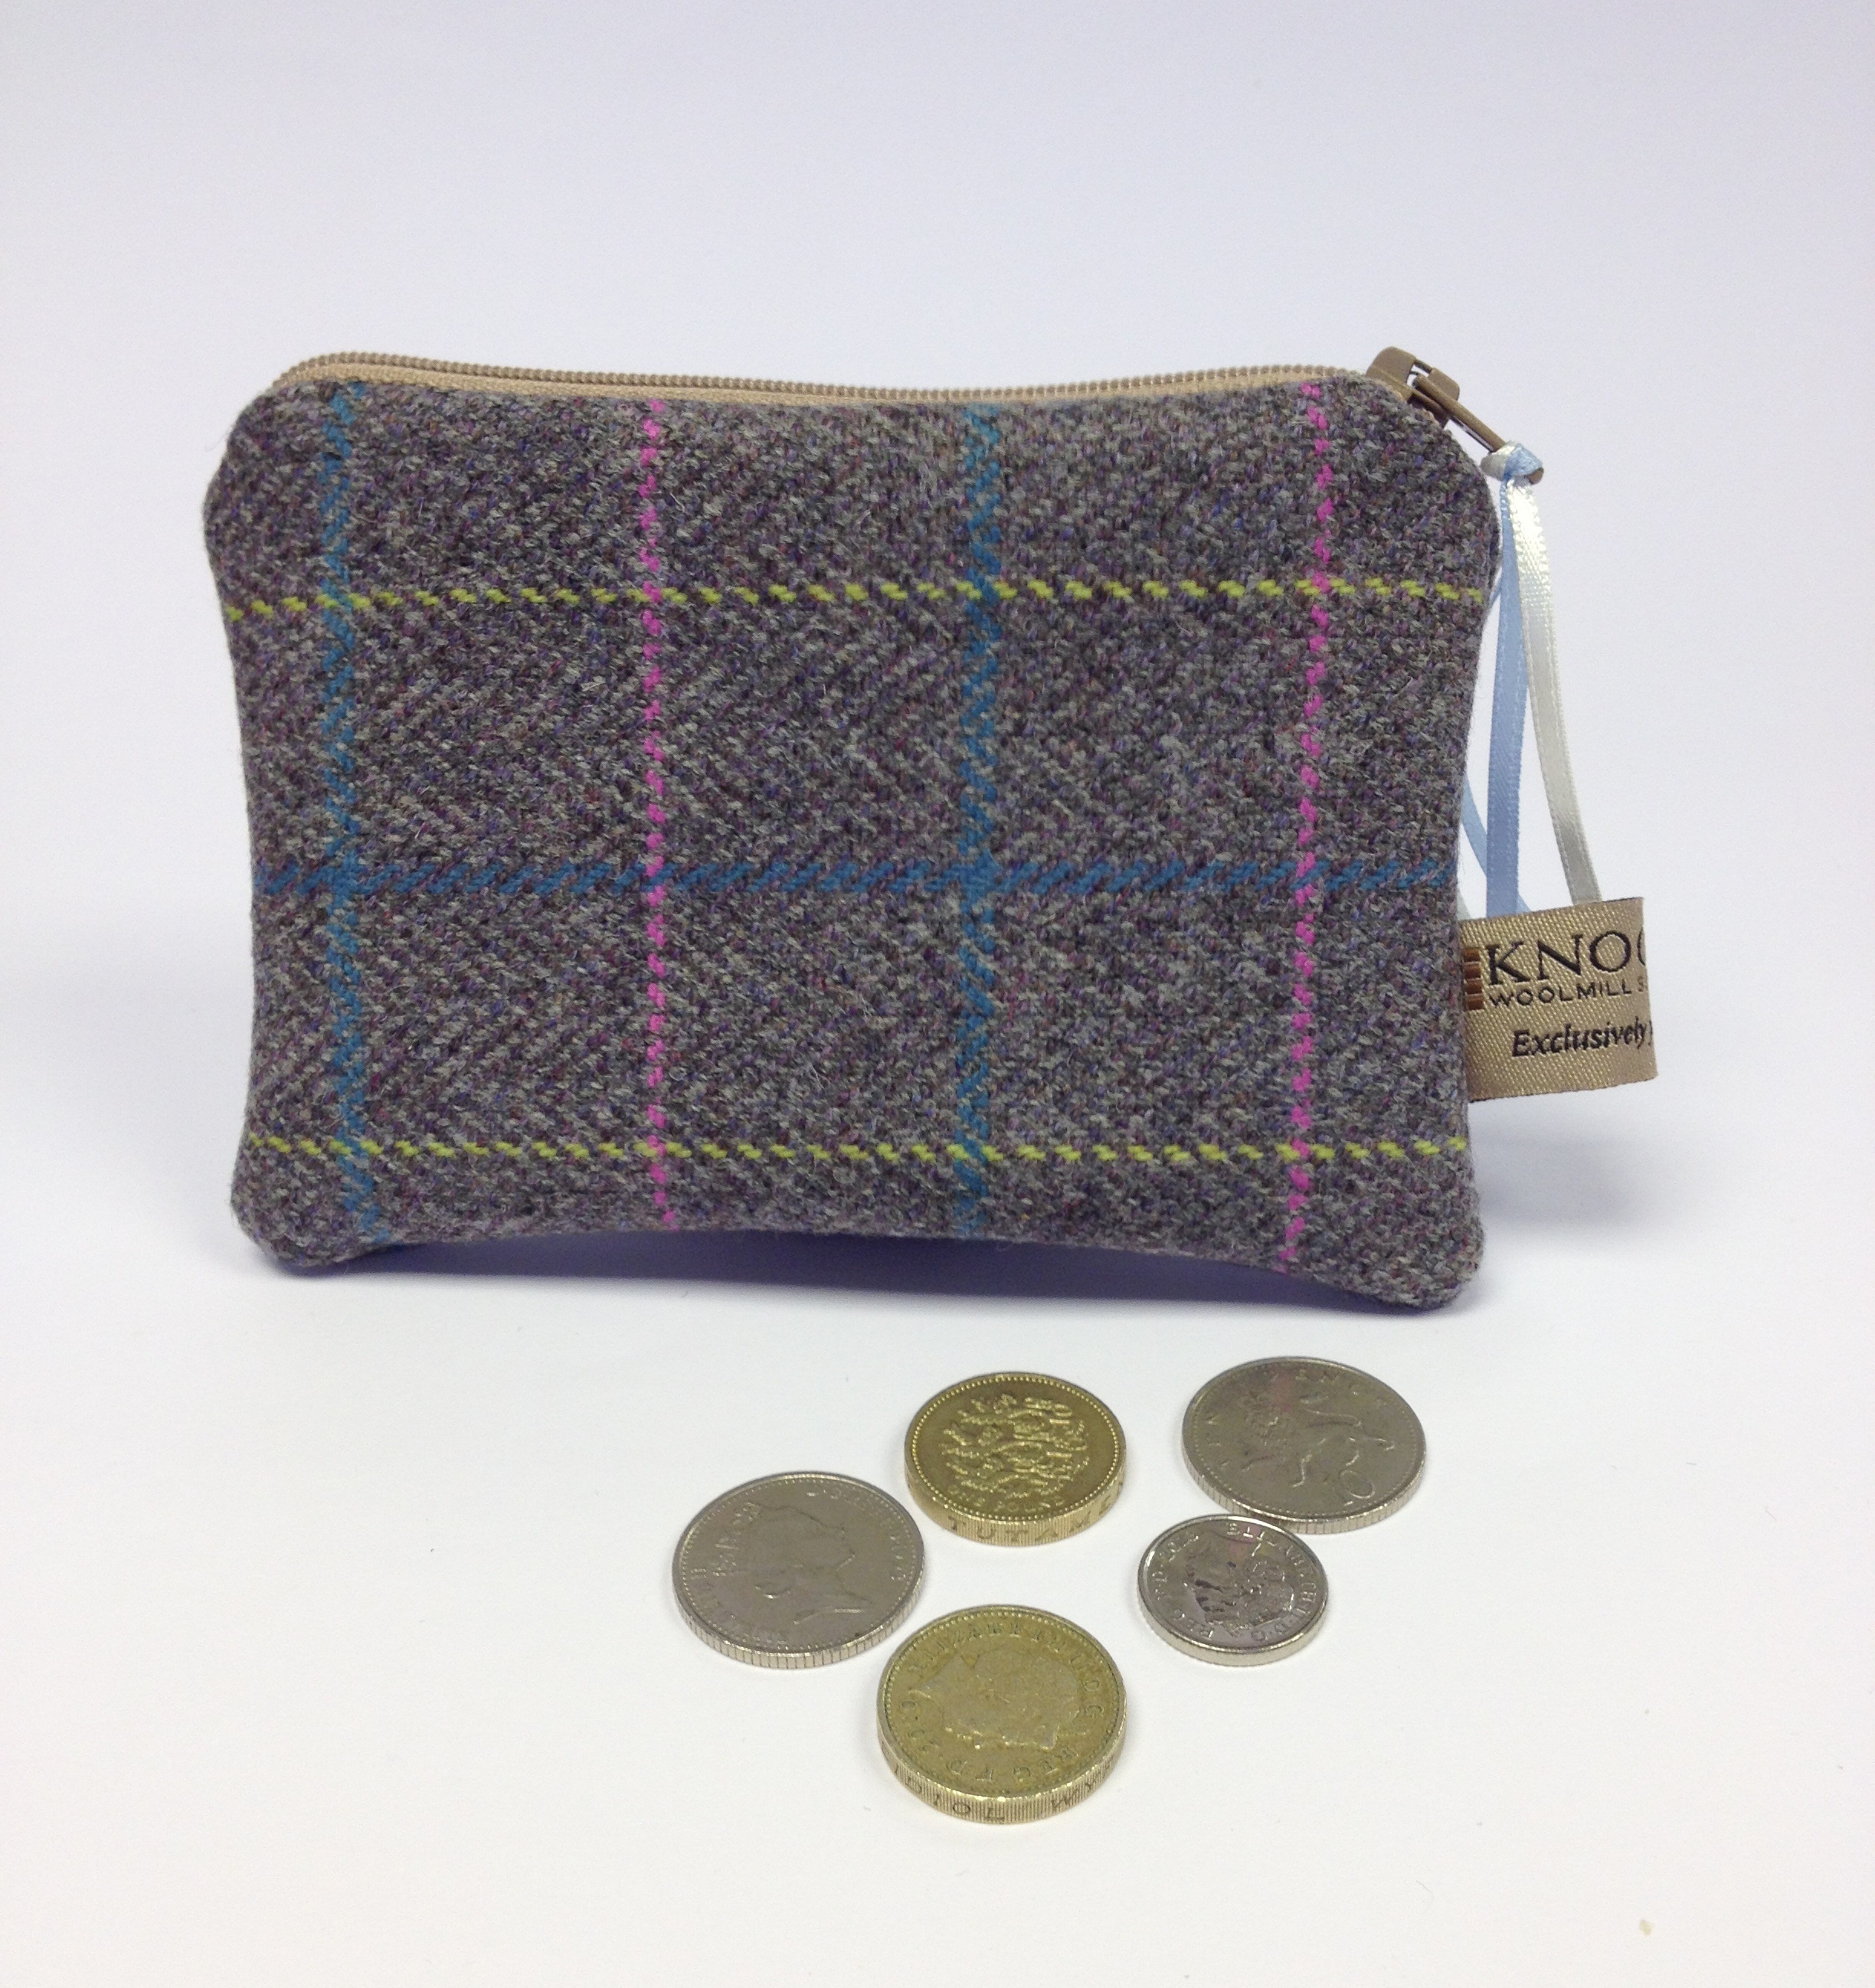 Le Meilleur Coin Purse Scottish Canals Ce Mois Ci